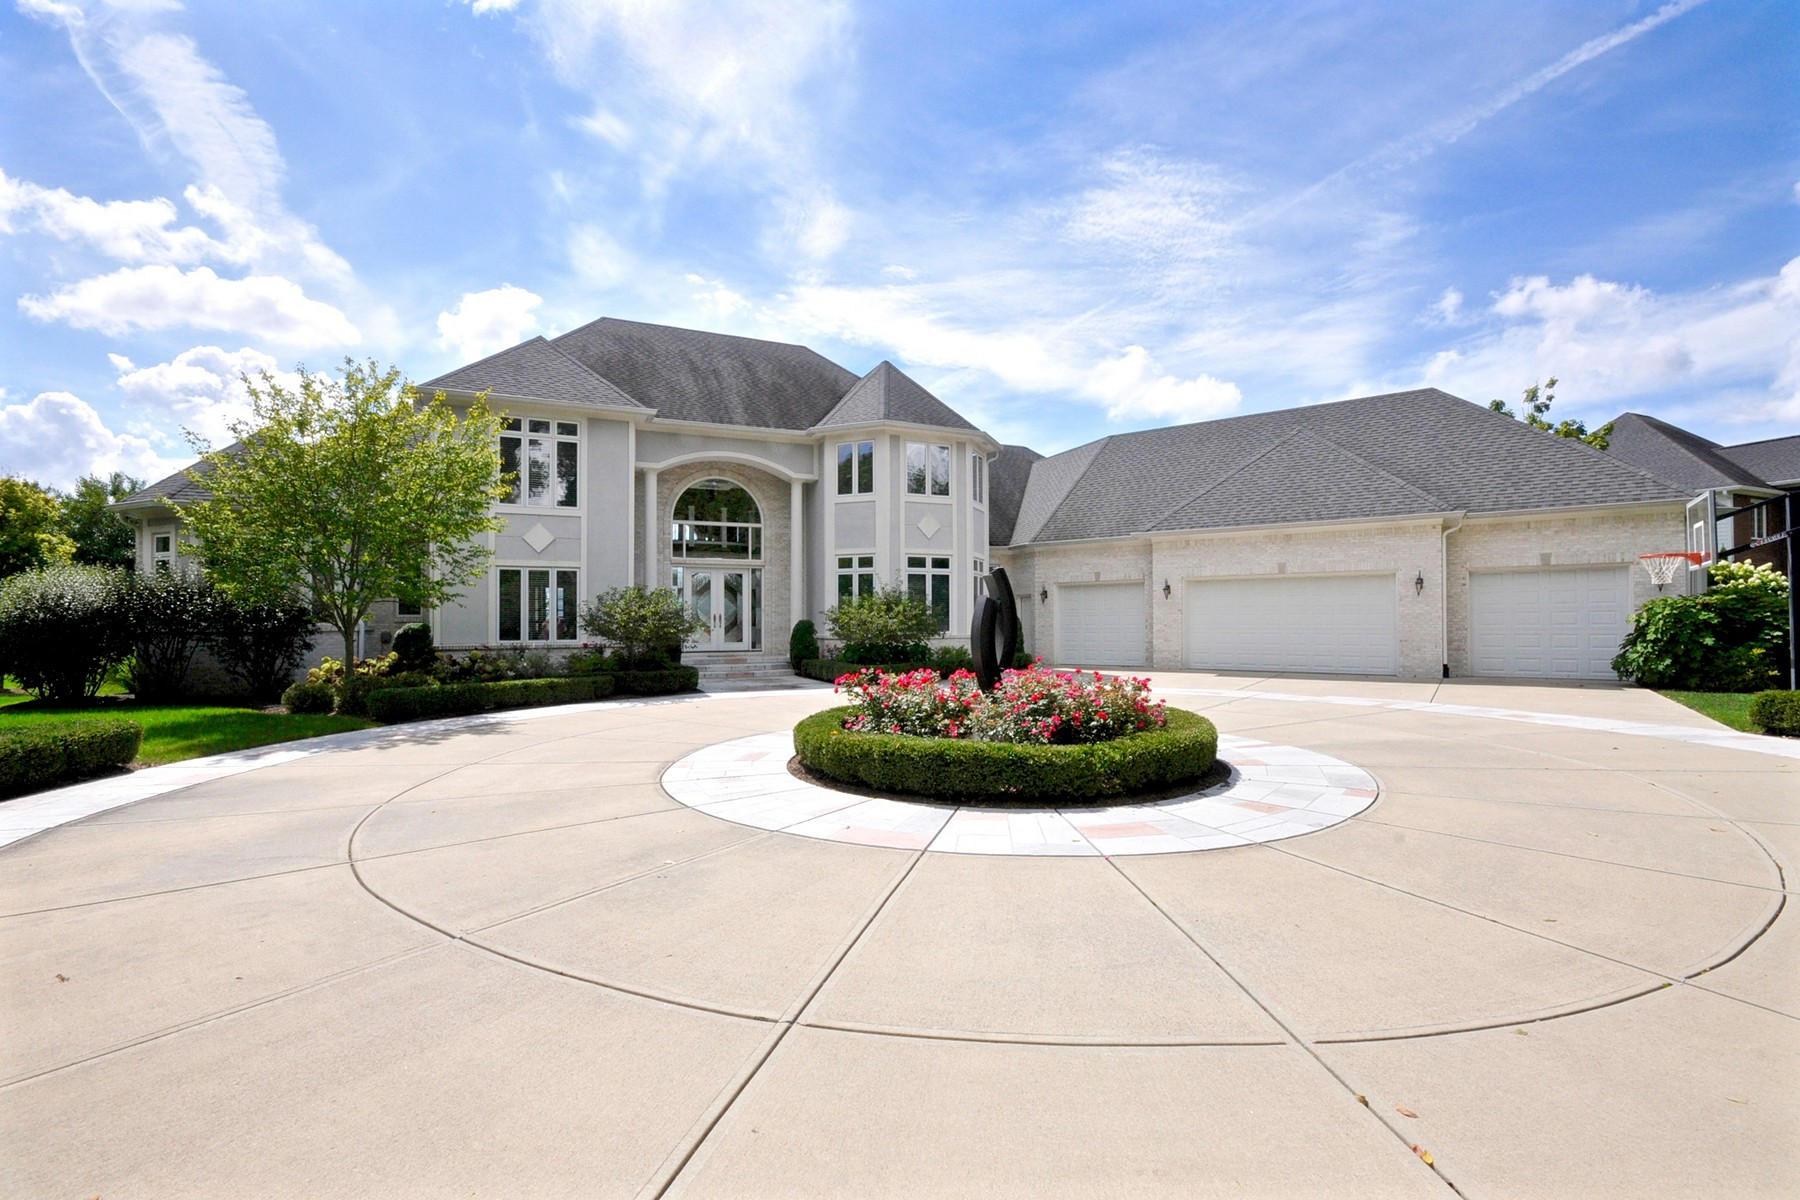 Maison unifamiliale pour l Vente à Private One Acre Estate 15149 Geist Ridge Drive Fishers, Indiana, 46040 États-Unis